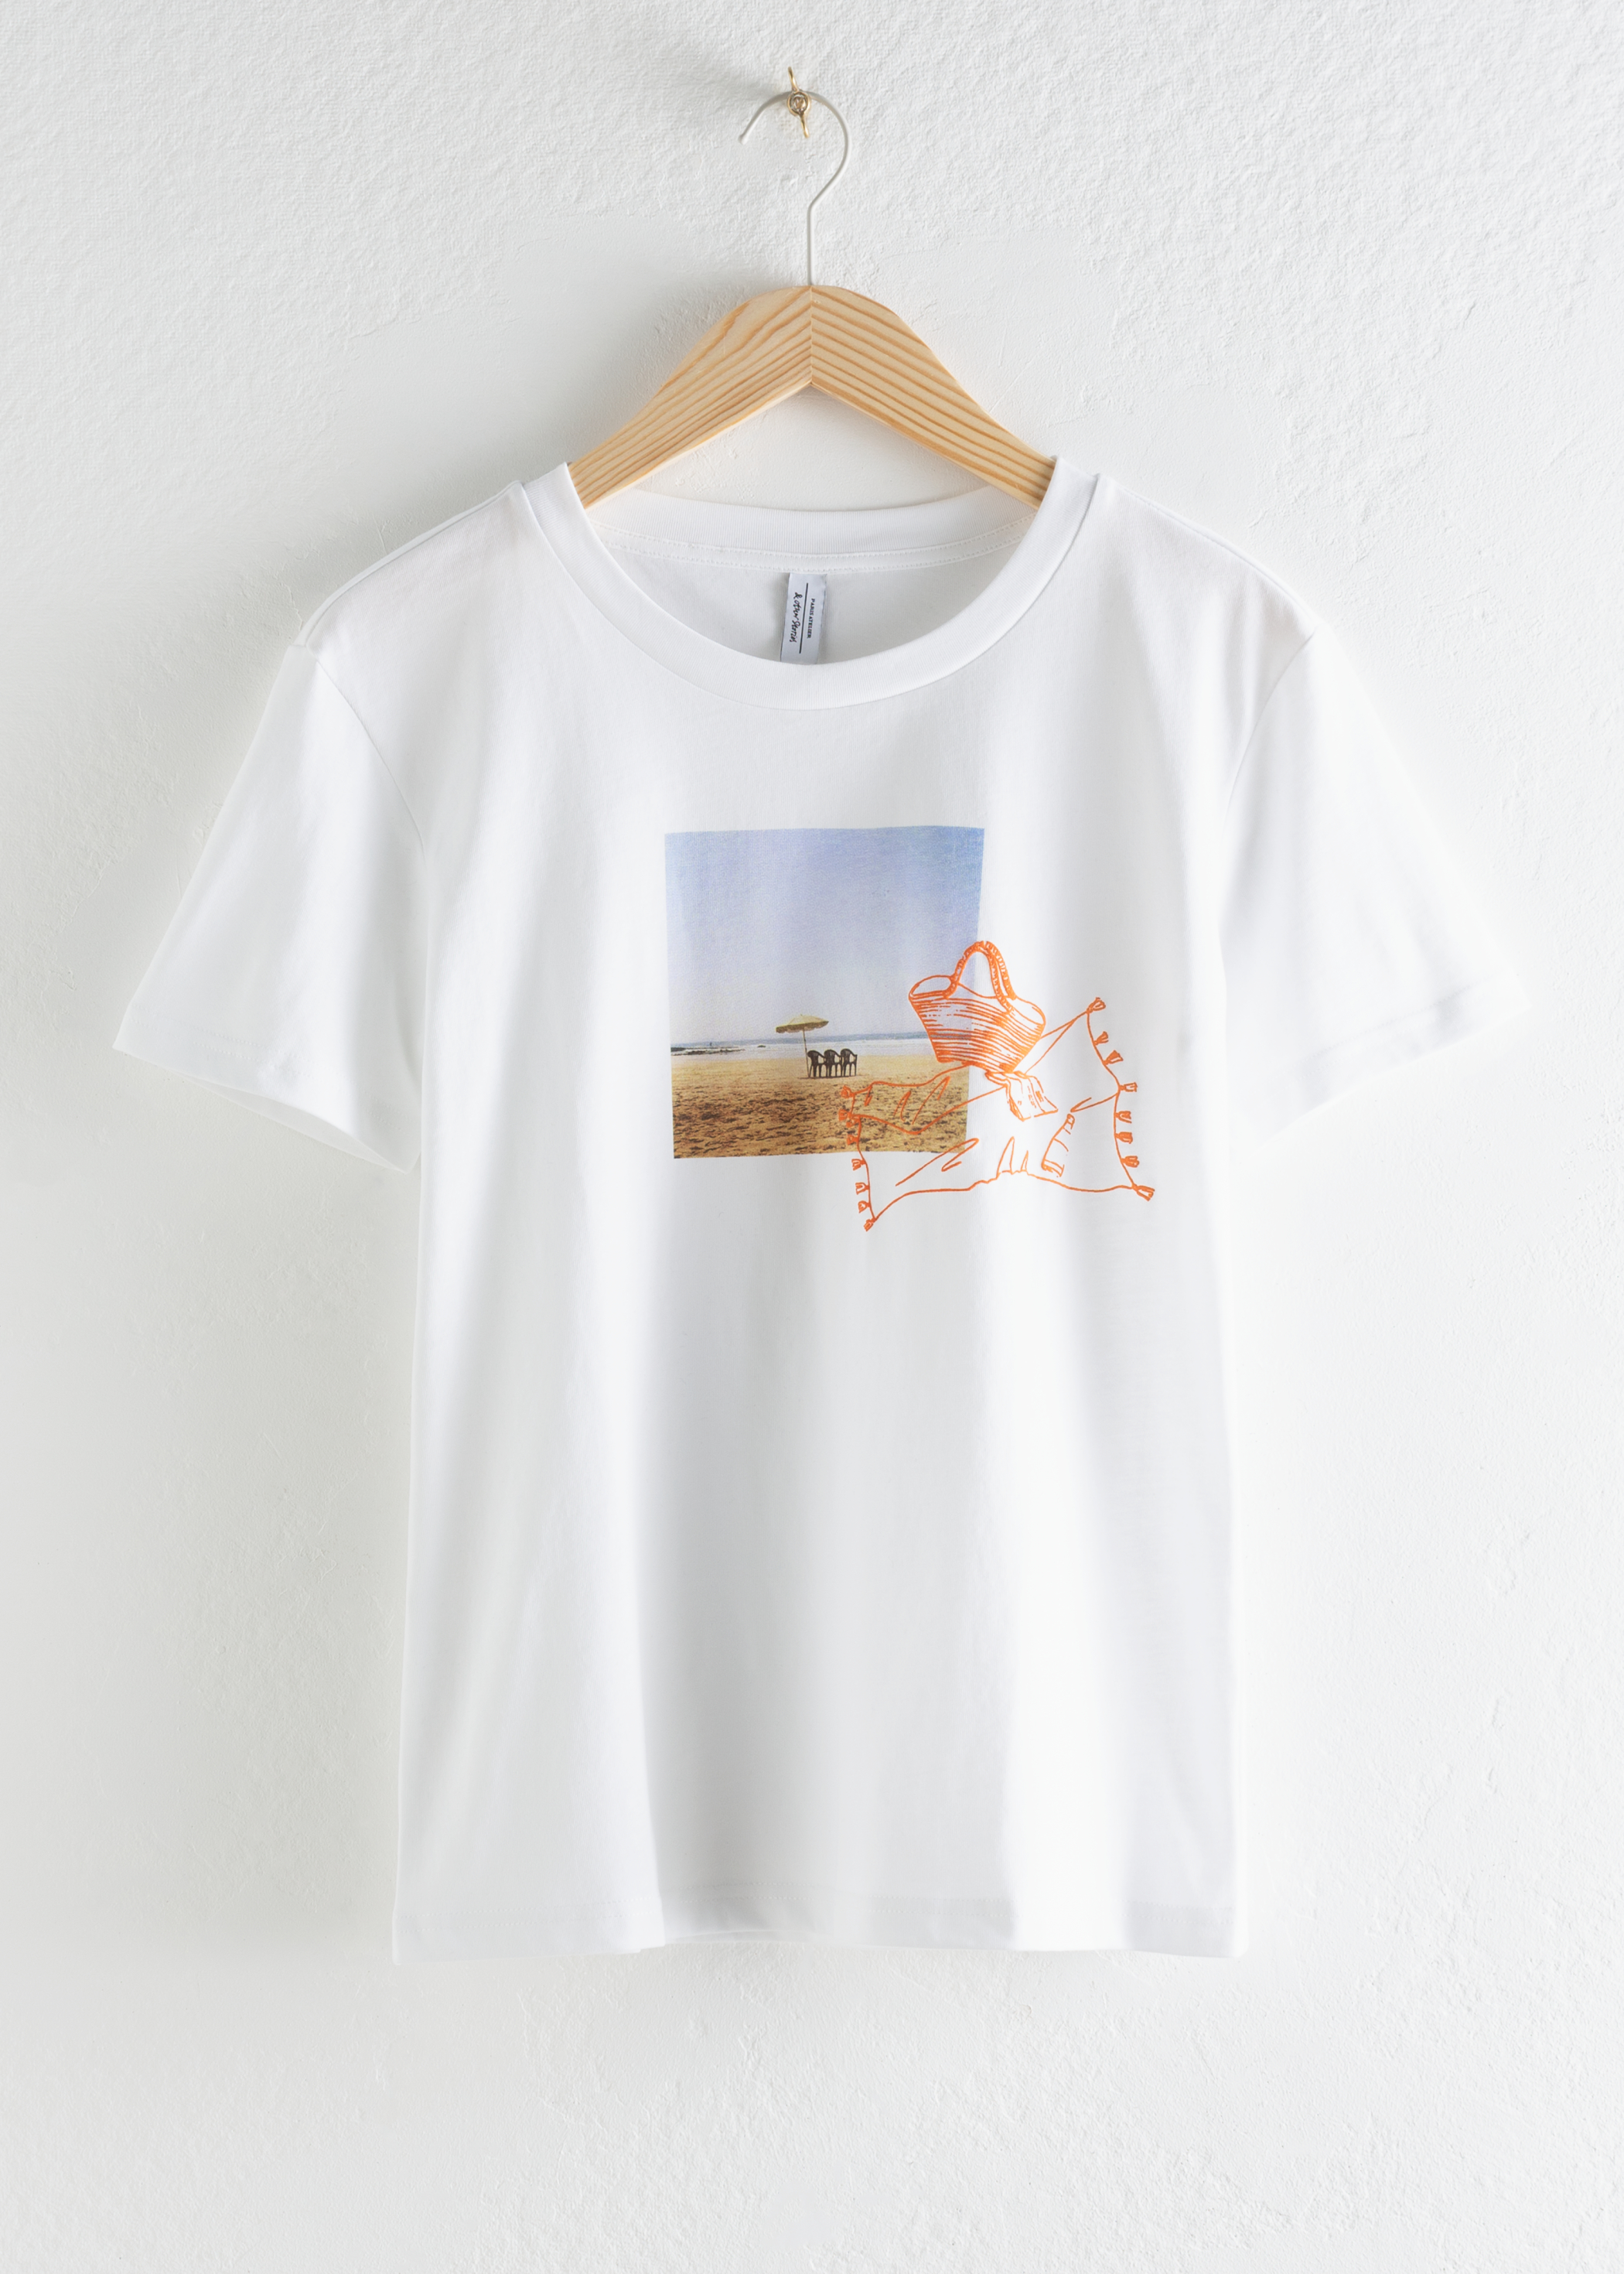 Beach Graphic Tee